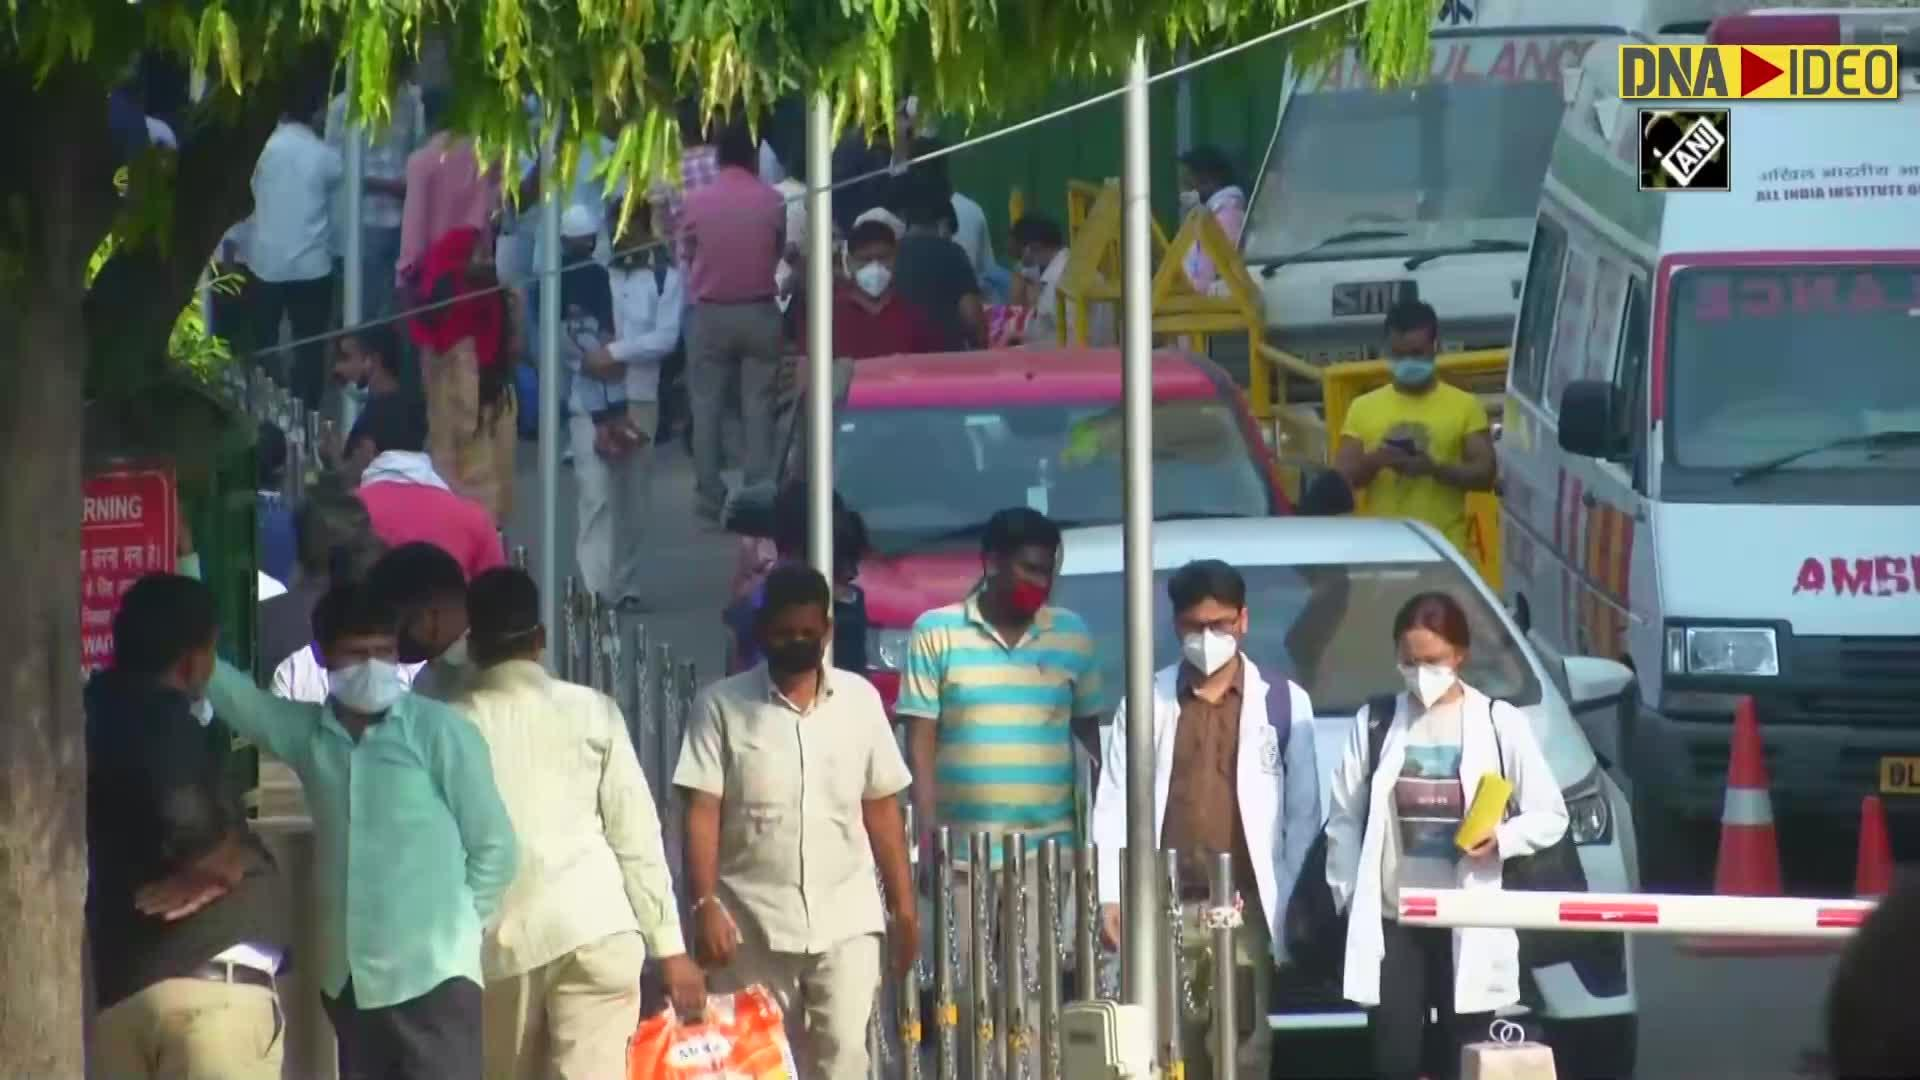 India records lowest 24 hour spike in last 3 months, daily death toll below 500 - DNA India